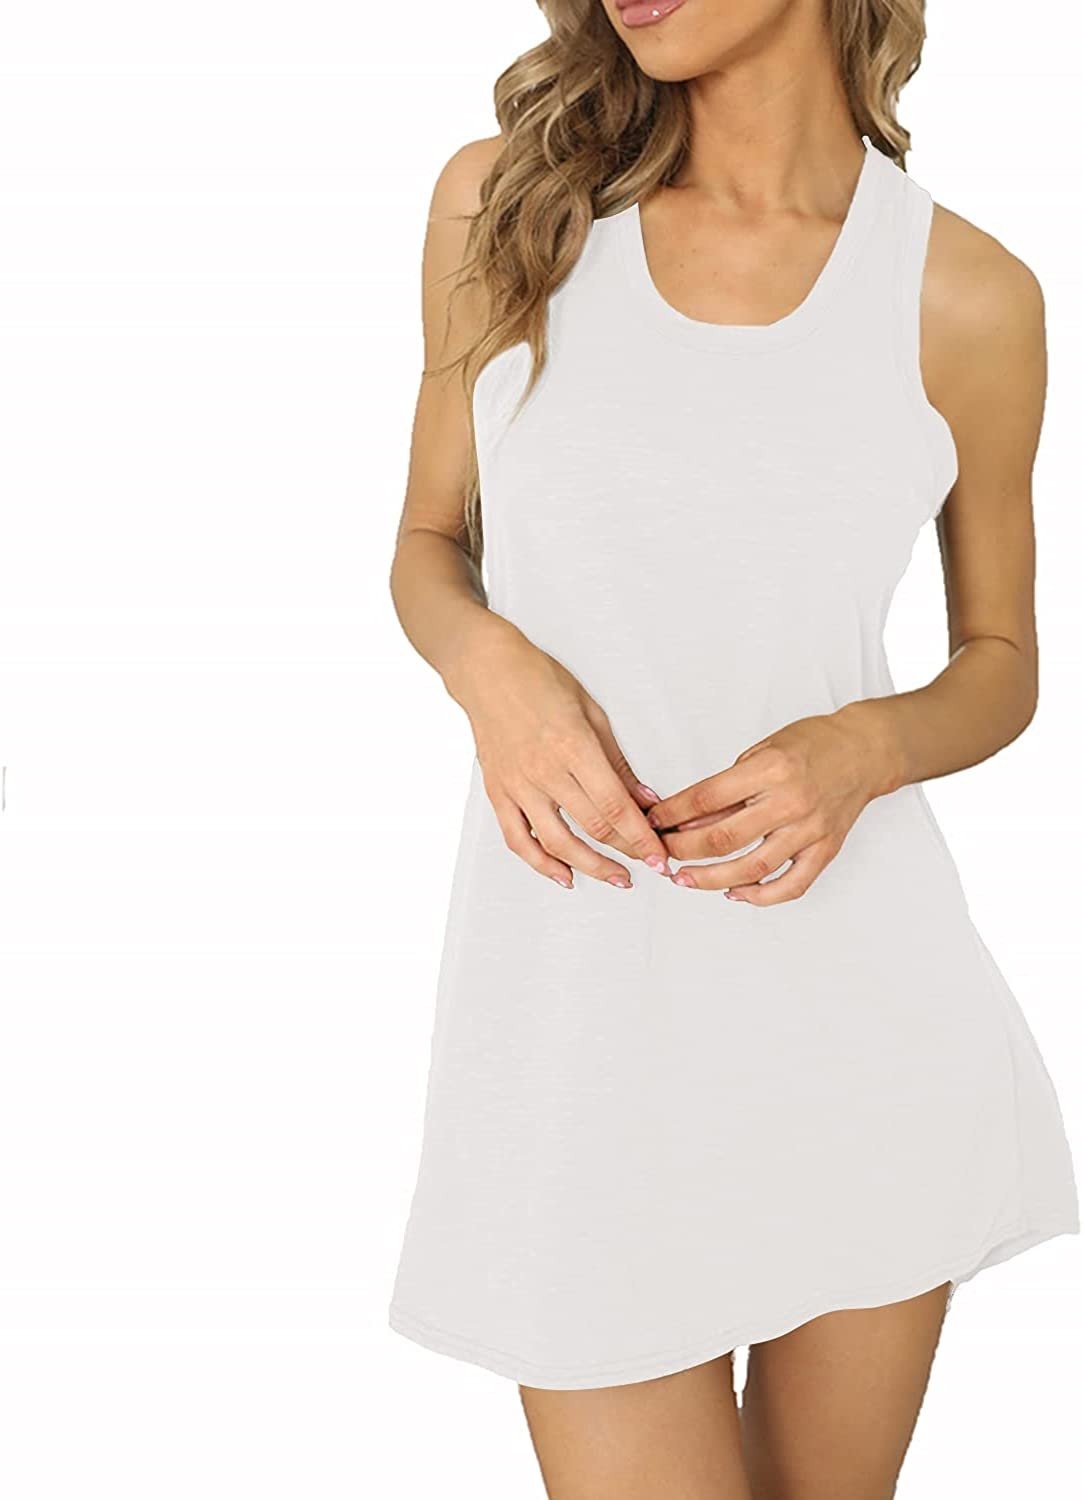 Nightgown for Women Sleepwear Sleeveless Award Cotton Nightdress Plain Limited time for free shipping